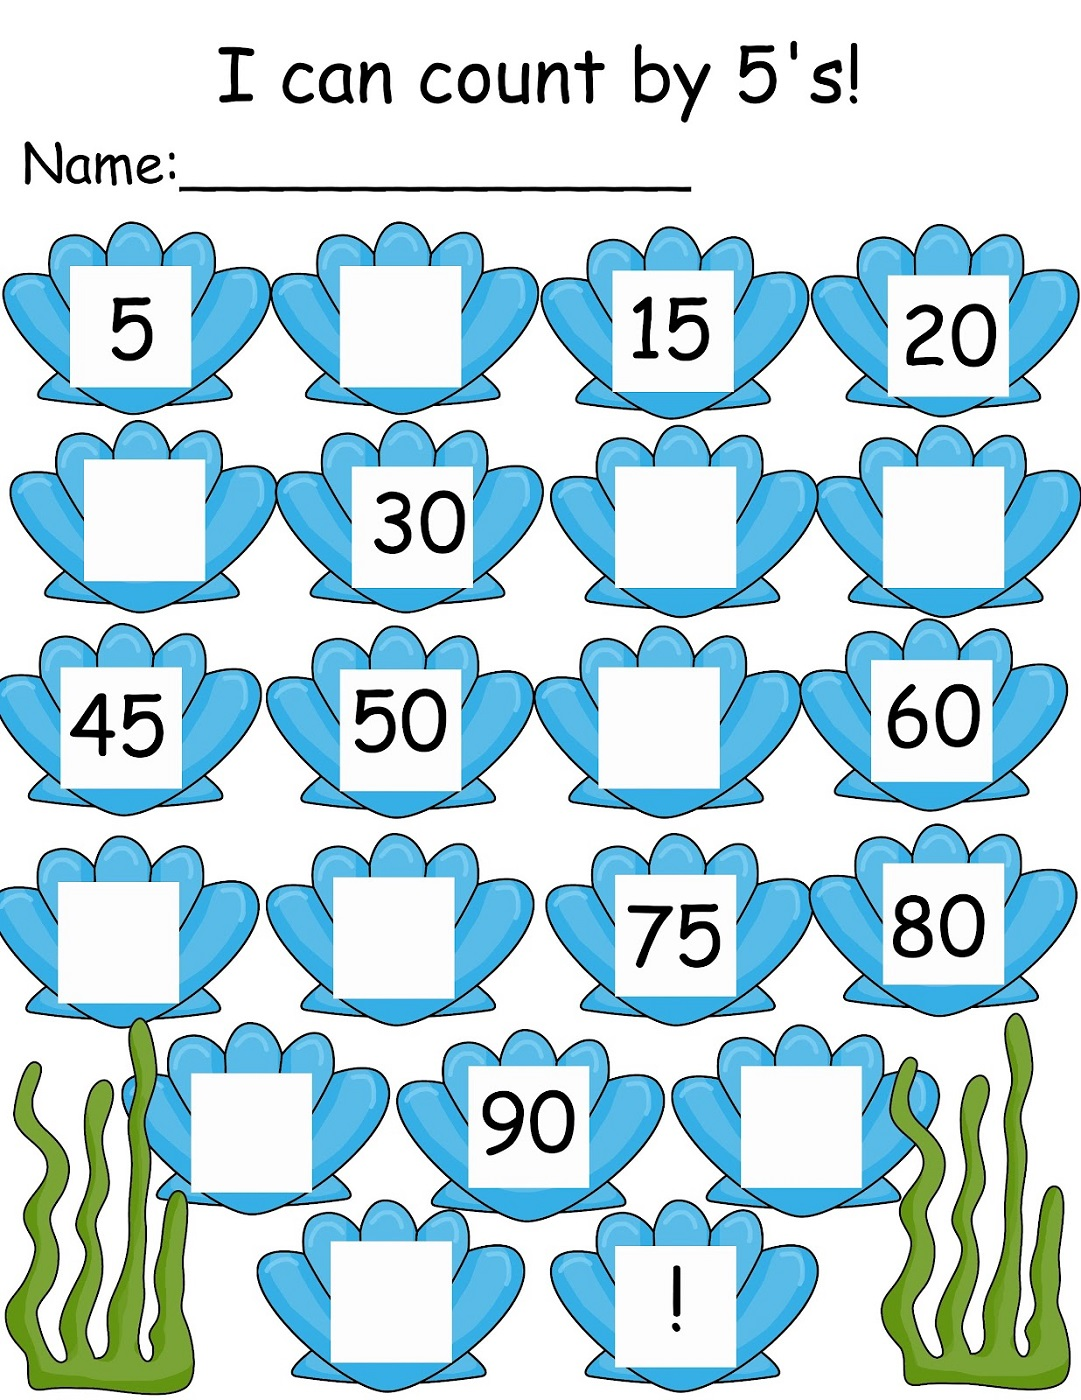 math worksheets | K5 Worksheets - Part 2